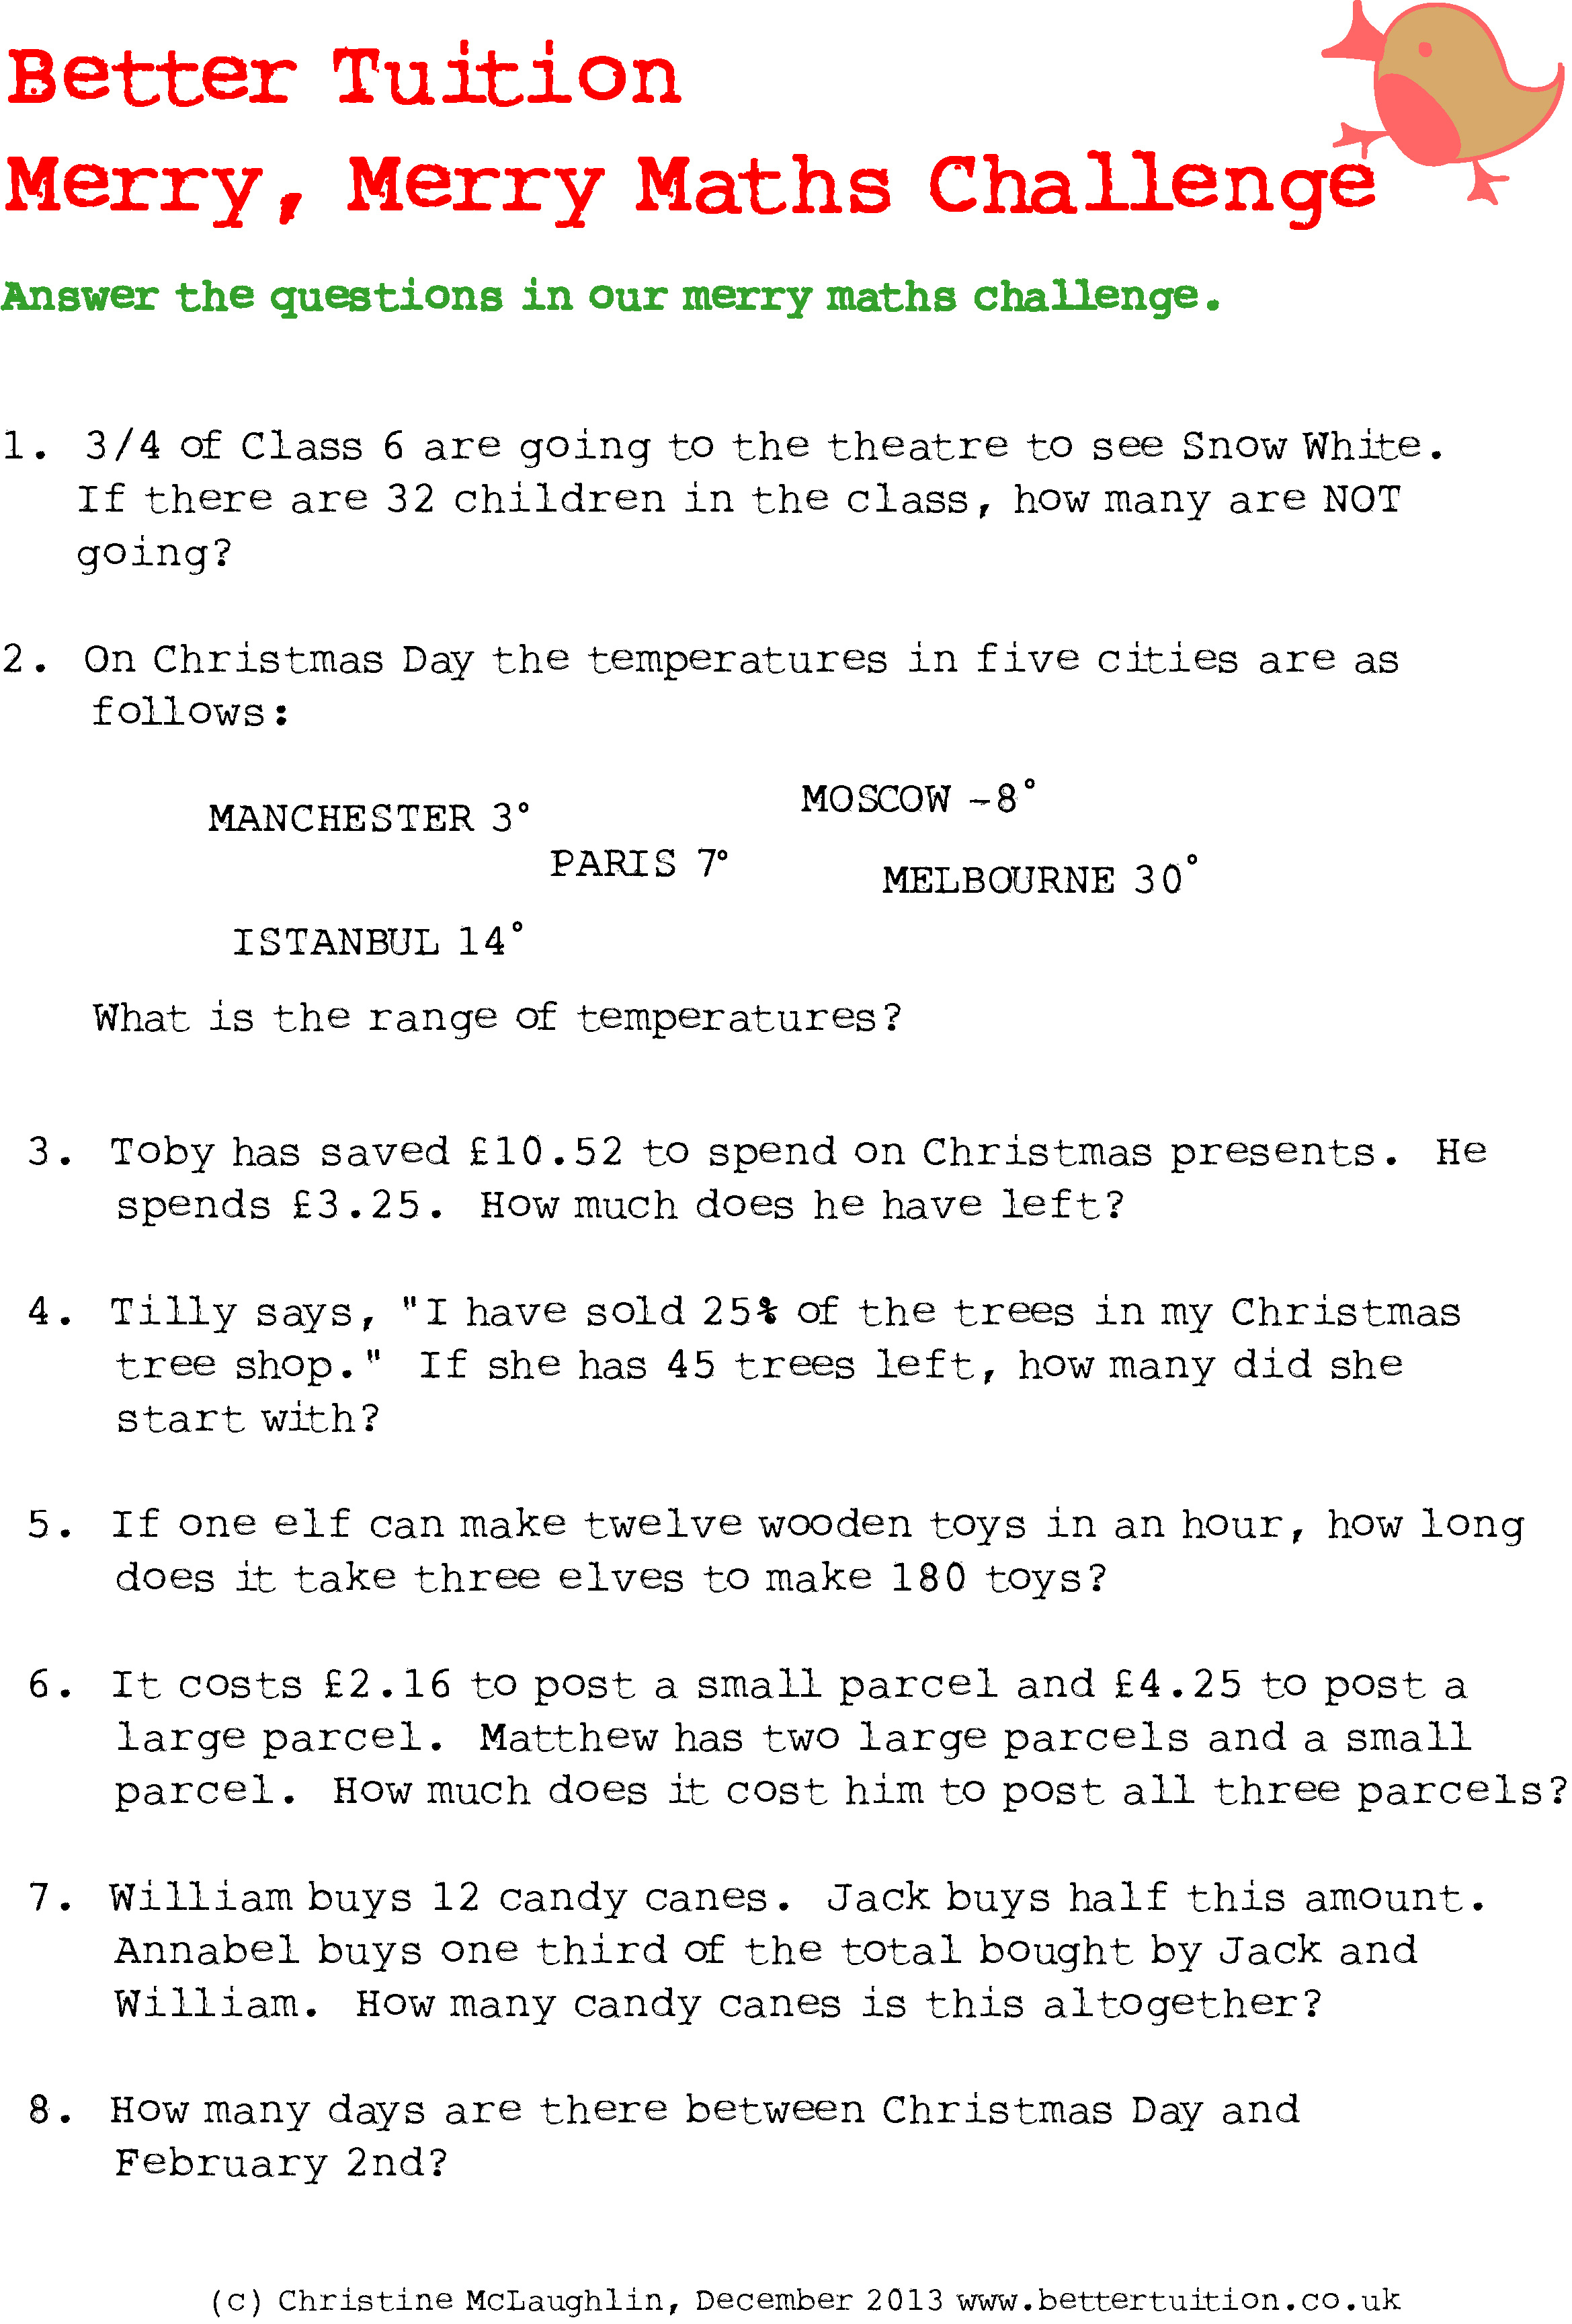 December 3rd: Christmas Maths Problems - Better Tuition